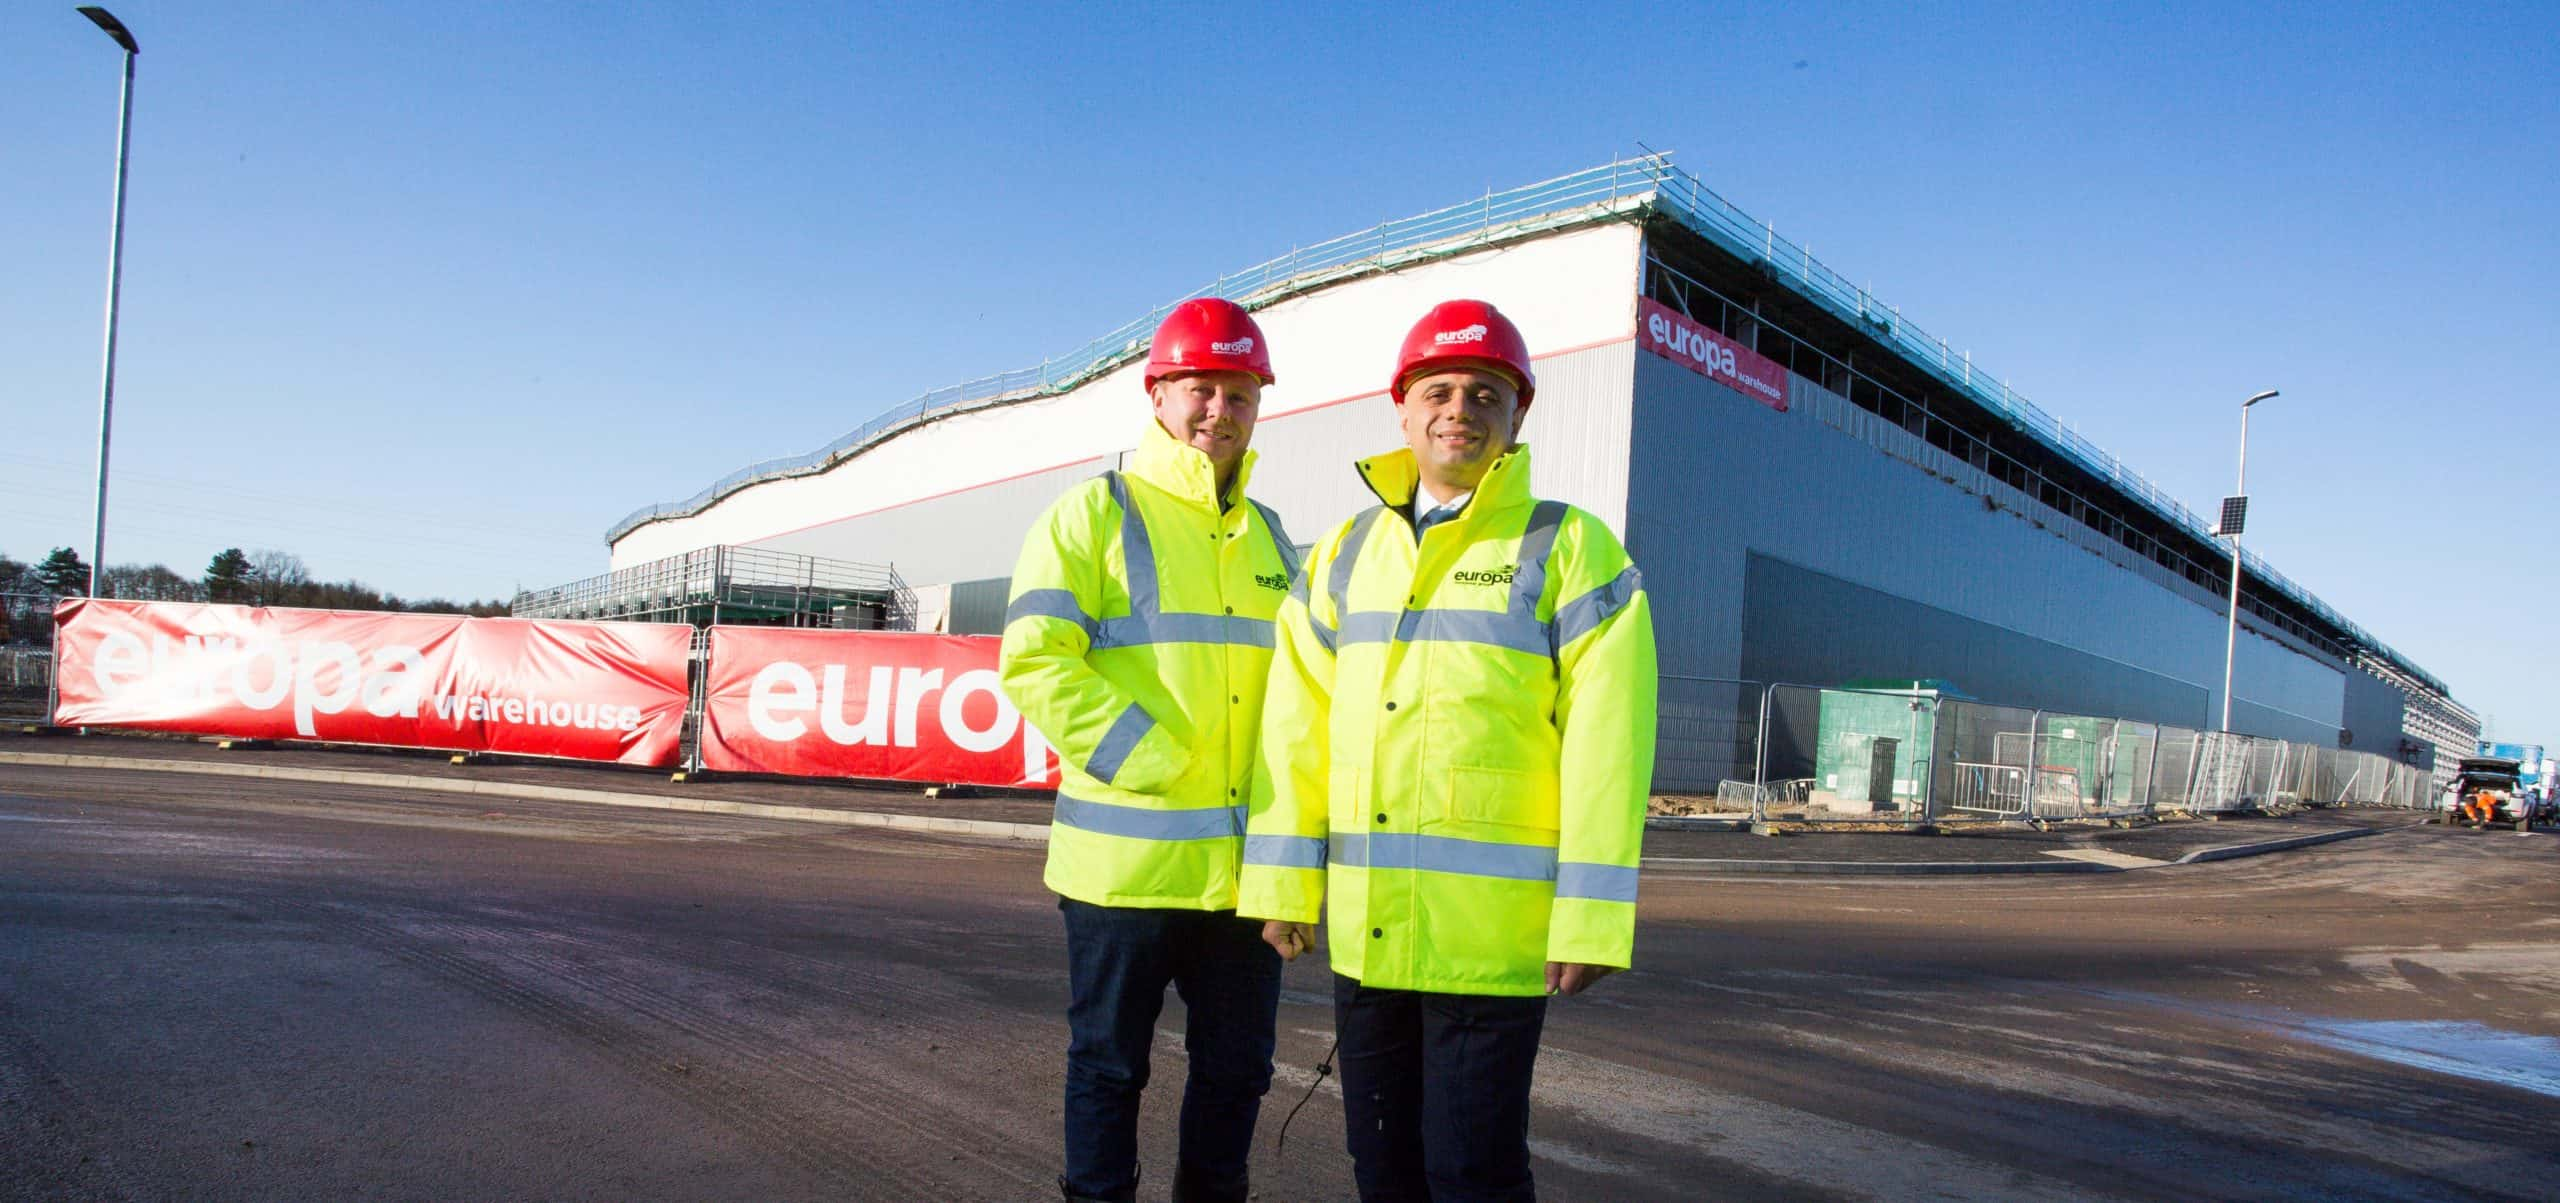 Chancellor of the Exchequer, Sajid Javid, visits Europa's new state-of-the-art site at Corby to celebrate first milestone being reached